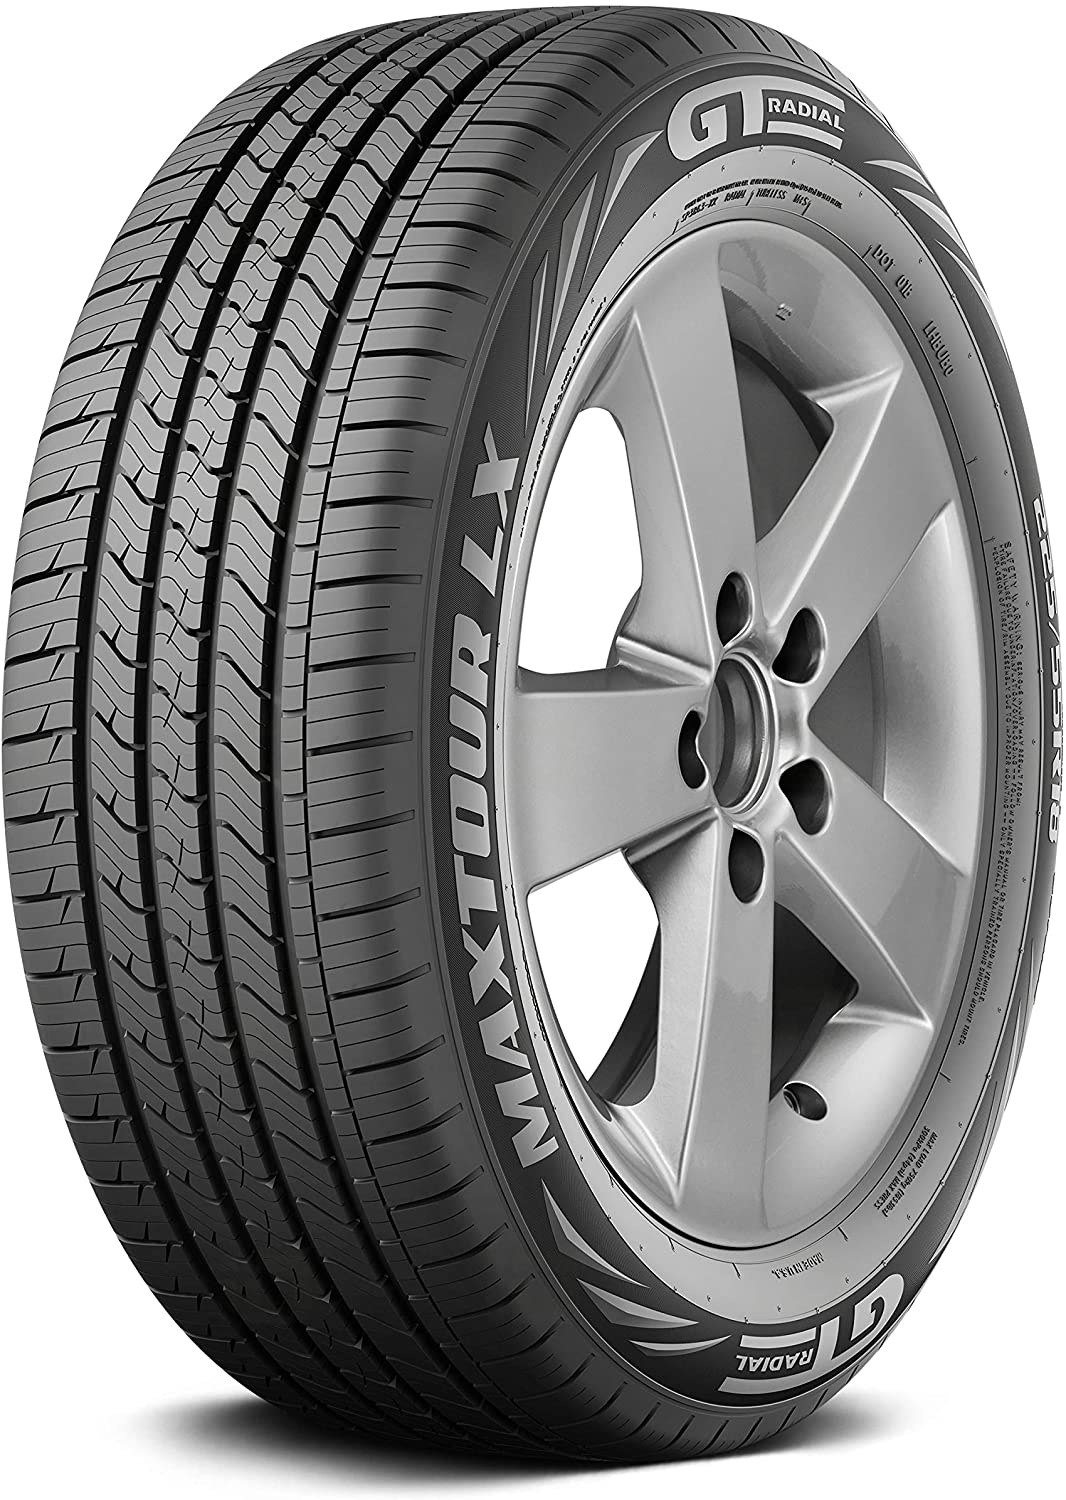 GT Radial Maxtour Max 47% Purchase OFF LX 215 Tire 60R16 100UA3536 95V